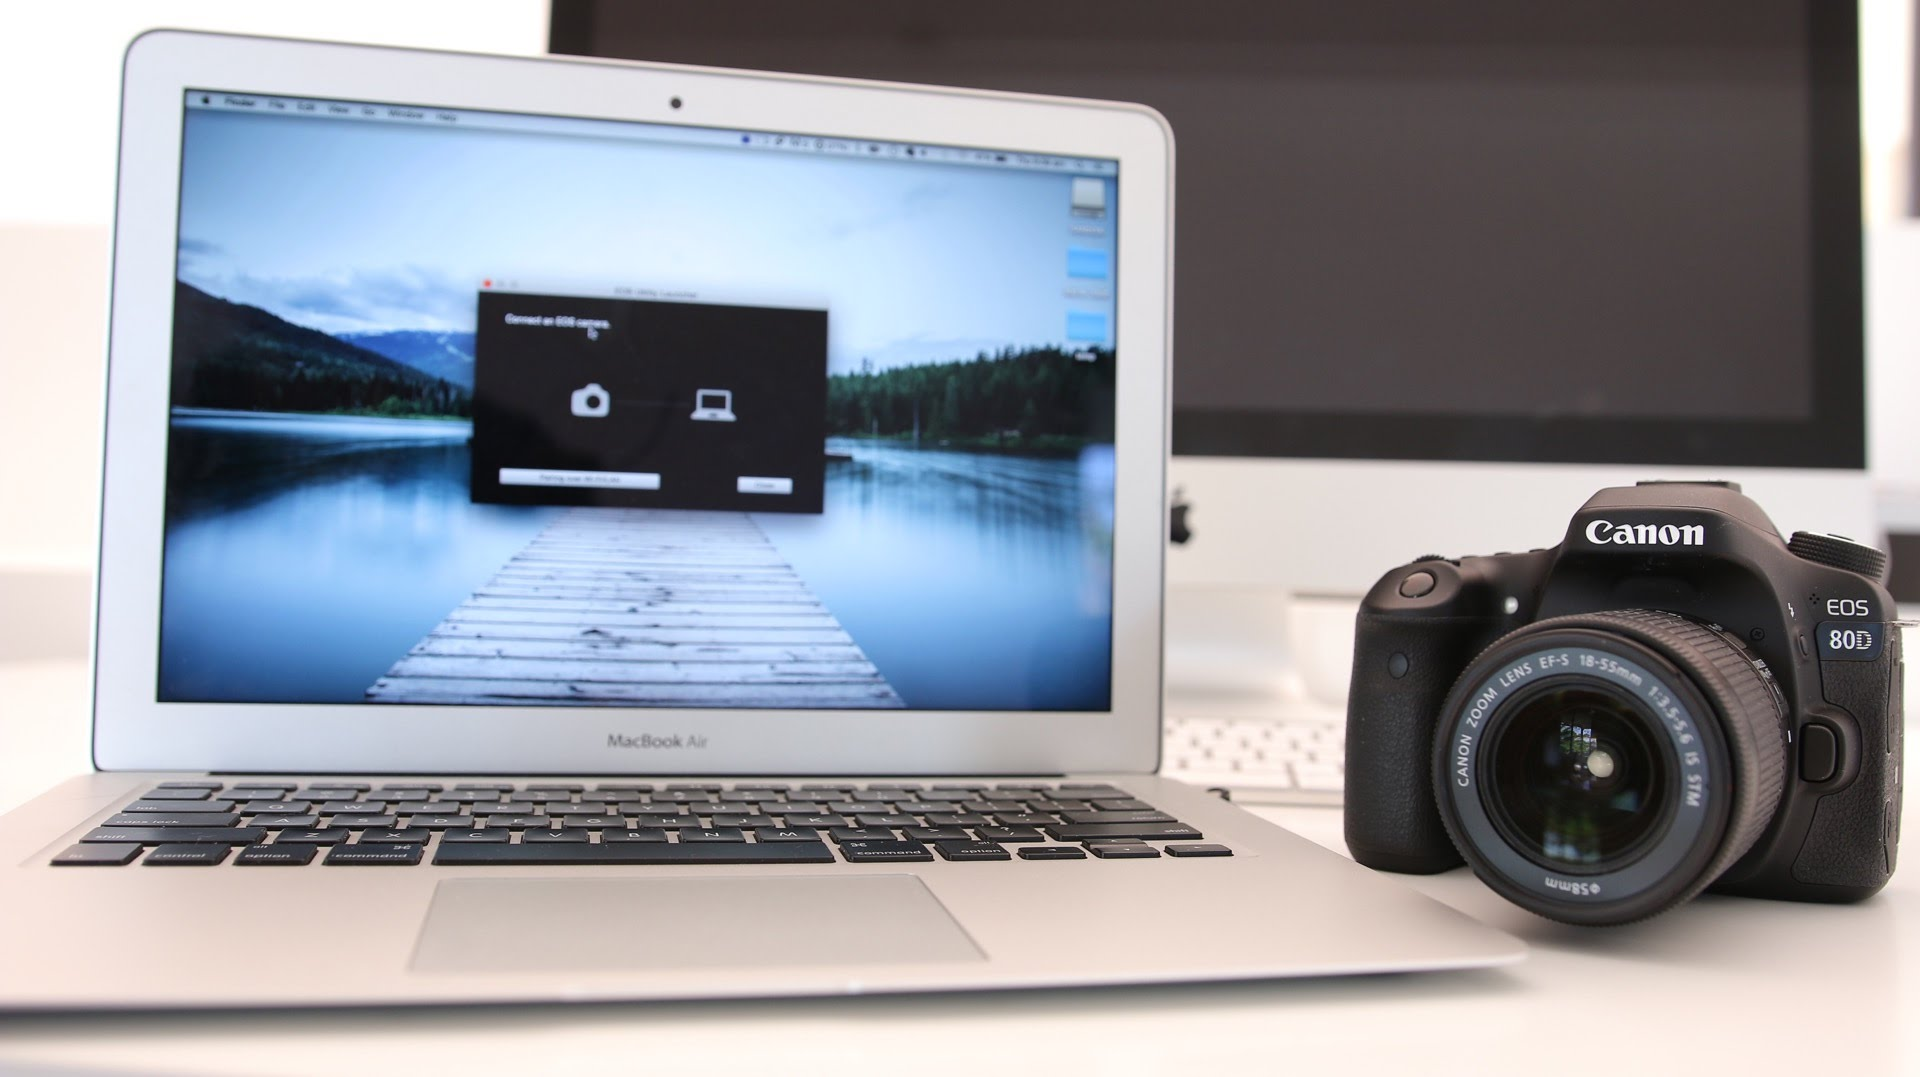 connect DSLR and laptop